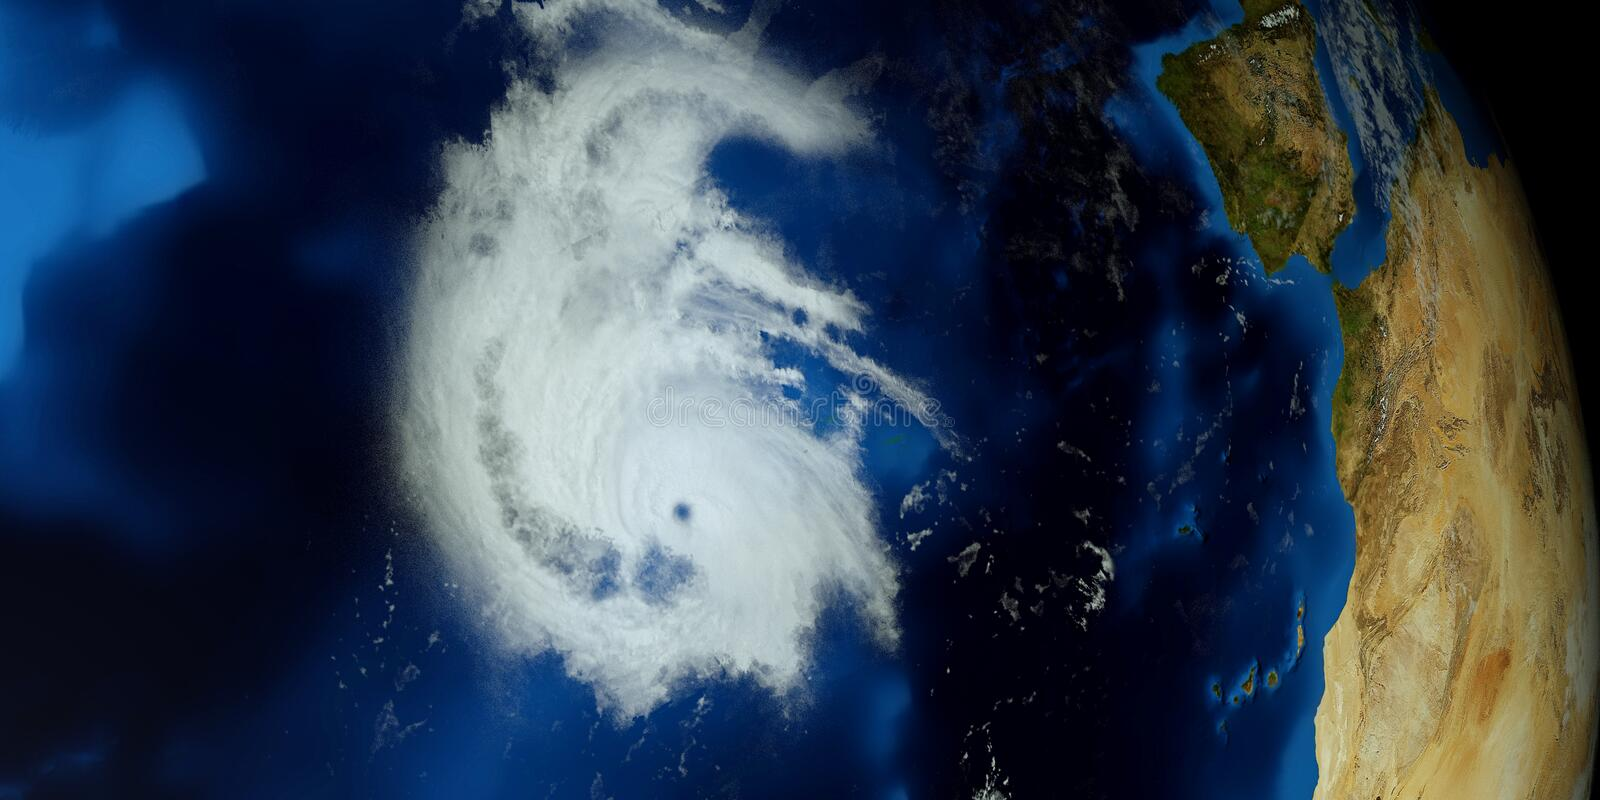 Extremely detailed and realistic high resolution 3D illustration of a Hurricane. Shot from Space. Elements of this image are furni. Extremely detailed and stock photography